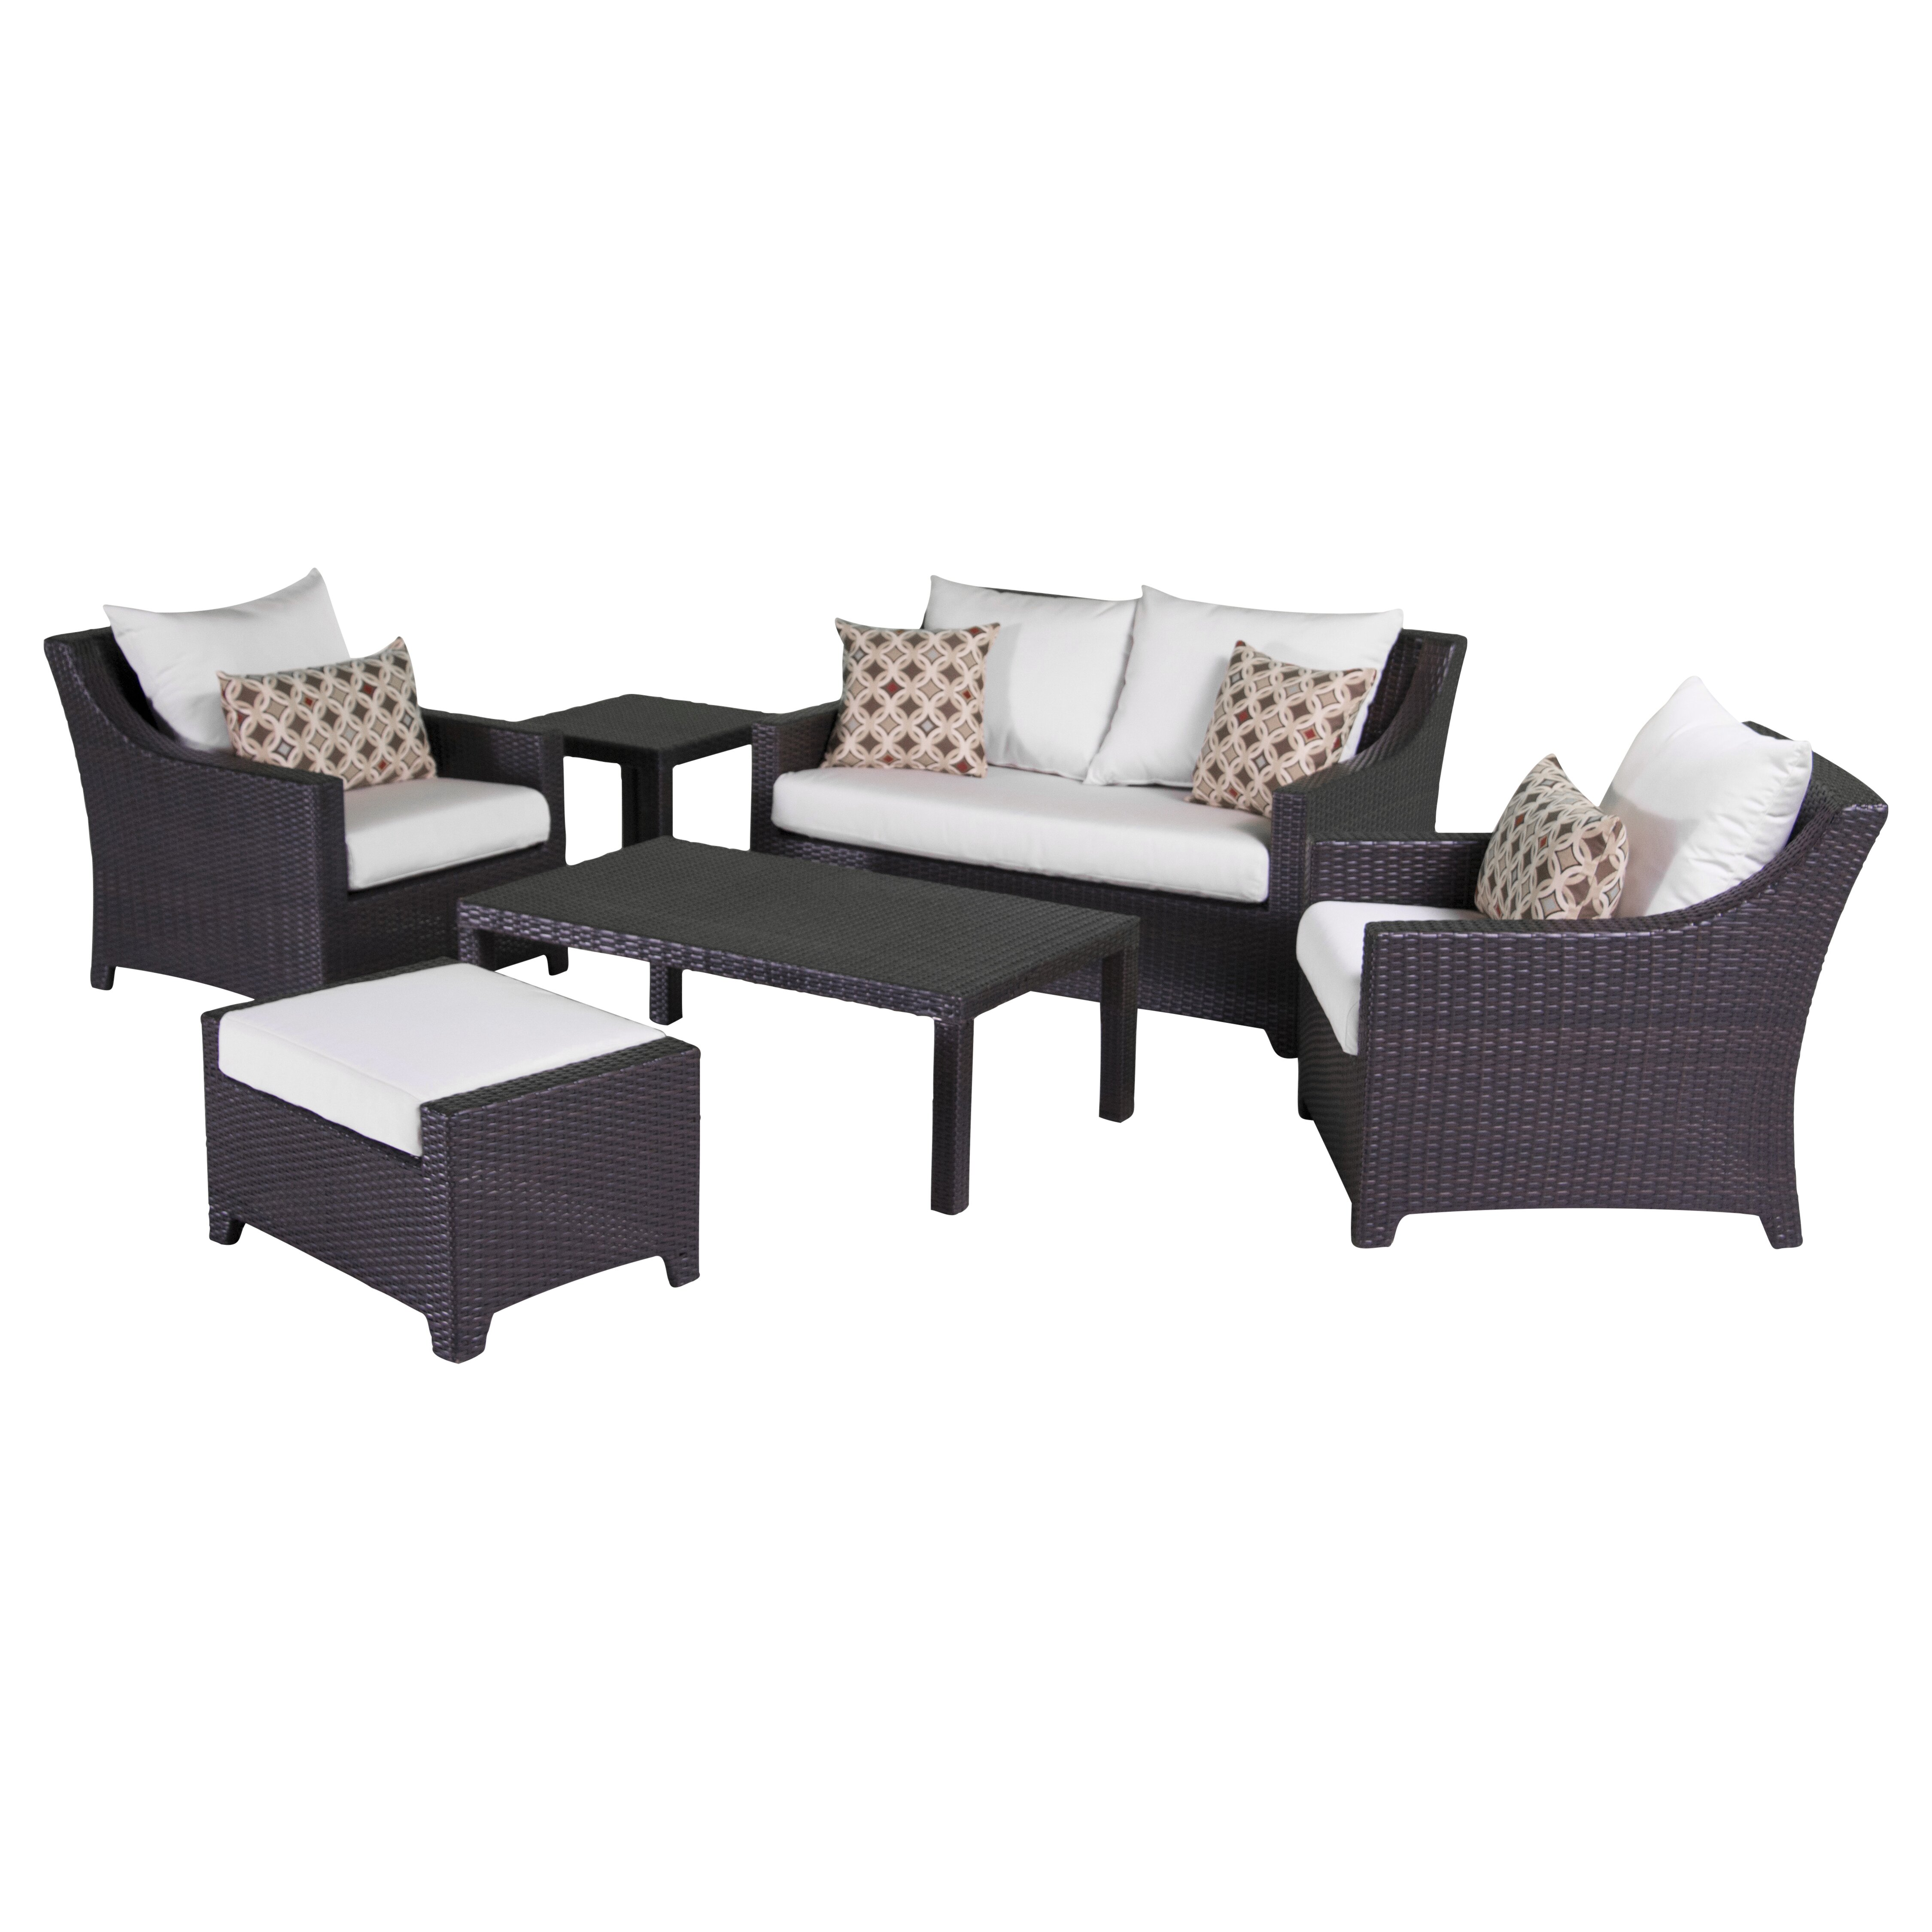 Ahmad 6 Piece Deep Seating Group With Cushions